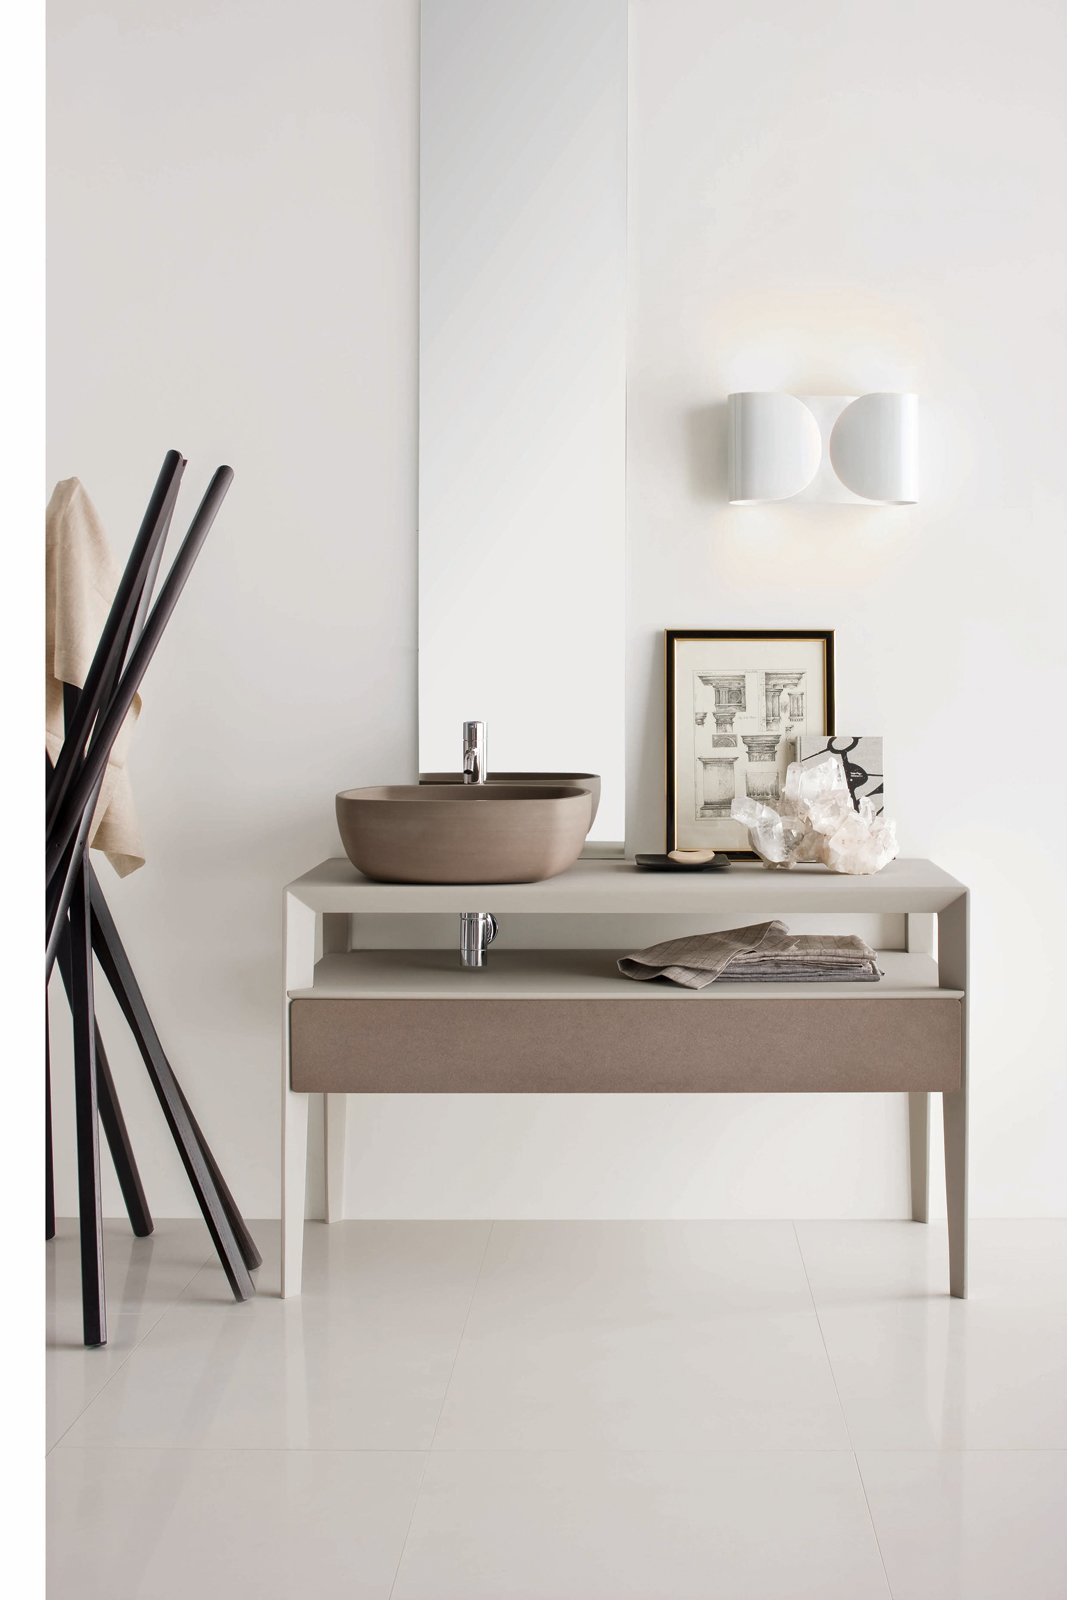 Inkstone wash-basin in Sand Brown stone with Neos furniture in an Ice silk finish, with Sand Brown stone fronts (Neos furniture designed by Luca Martorano). Tagged: Bath Room and Vessel Sink.  Best Photos from Inky Inspiration